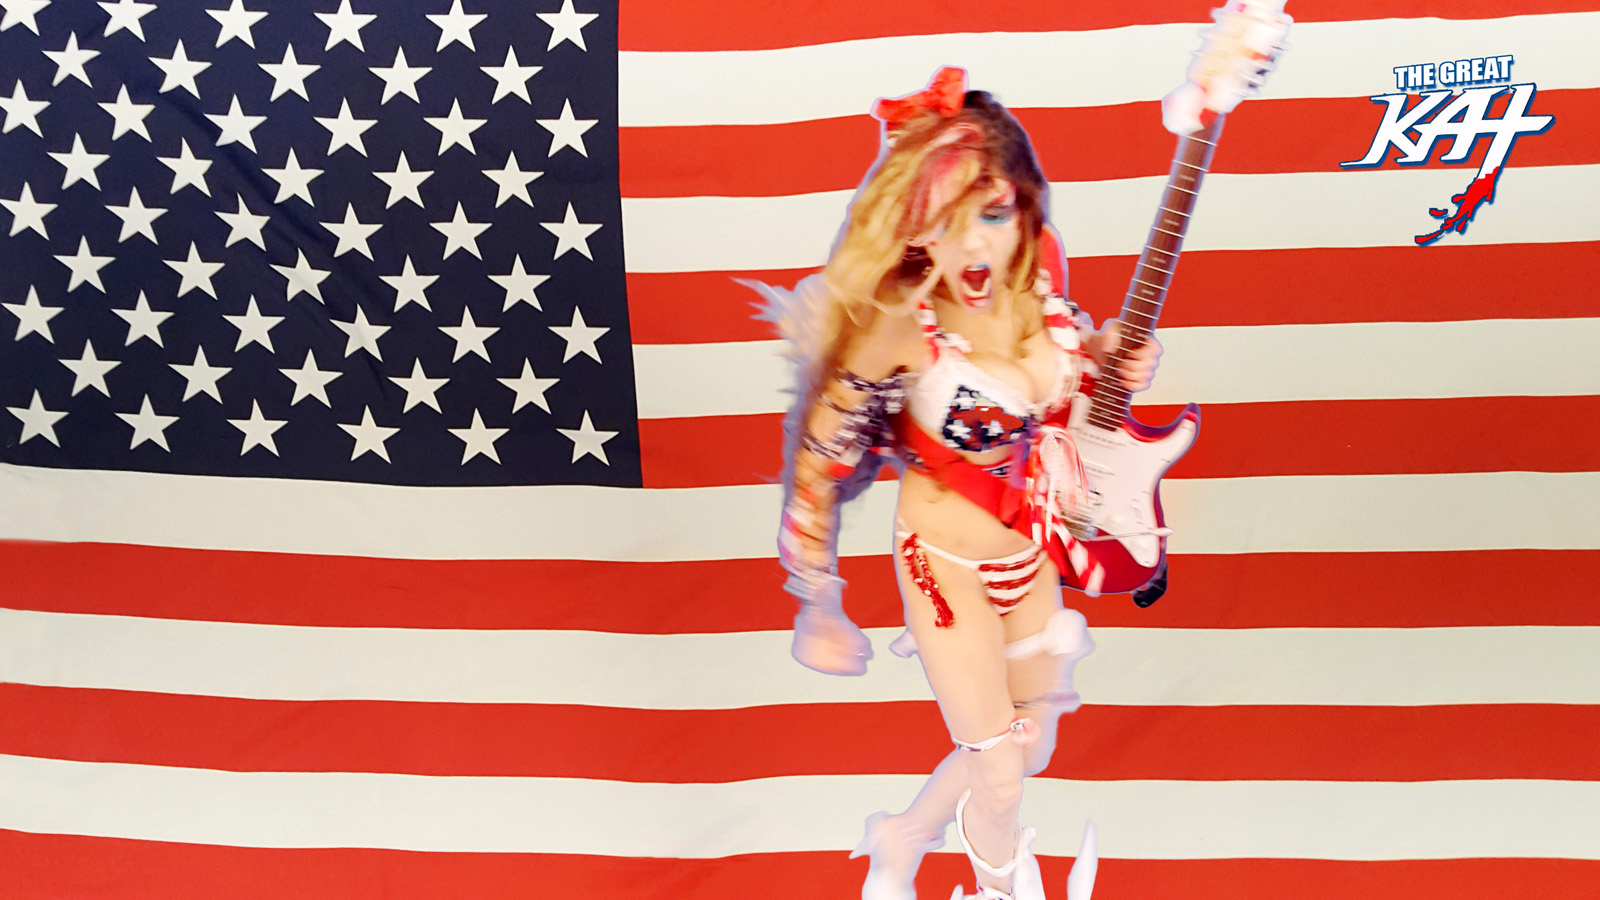 """SHRED PATRIOT! From The Great Kat's """"TERROR"""" MUSIC VIDEO!"""